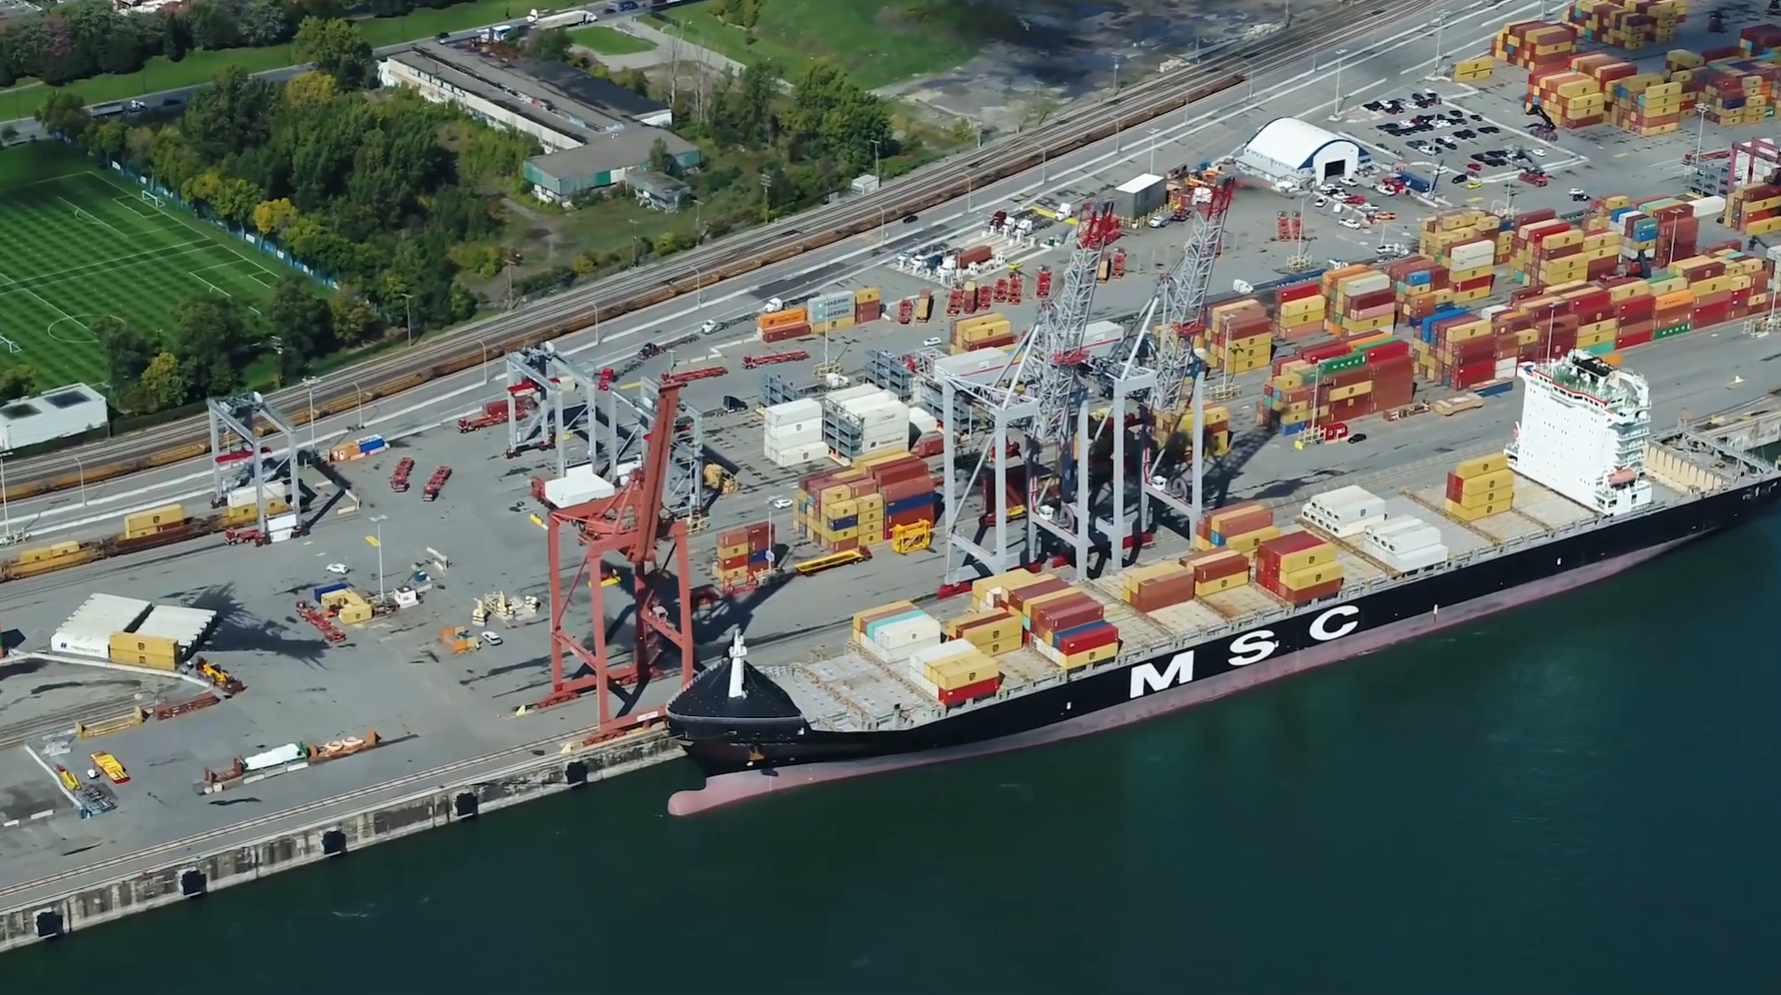 The Port of Montreal has said it will roll out an AI cargo handling system